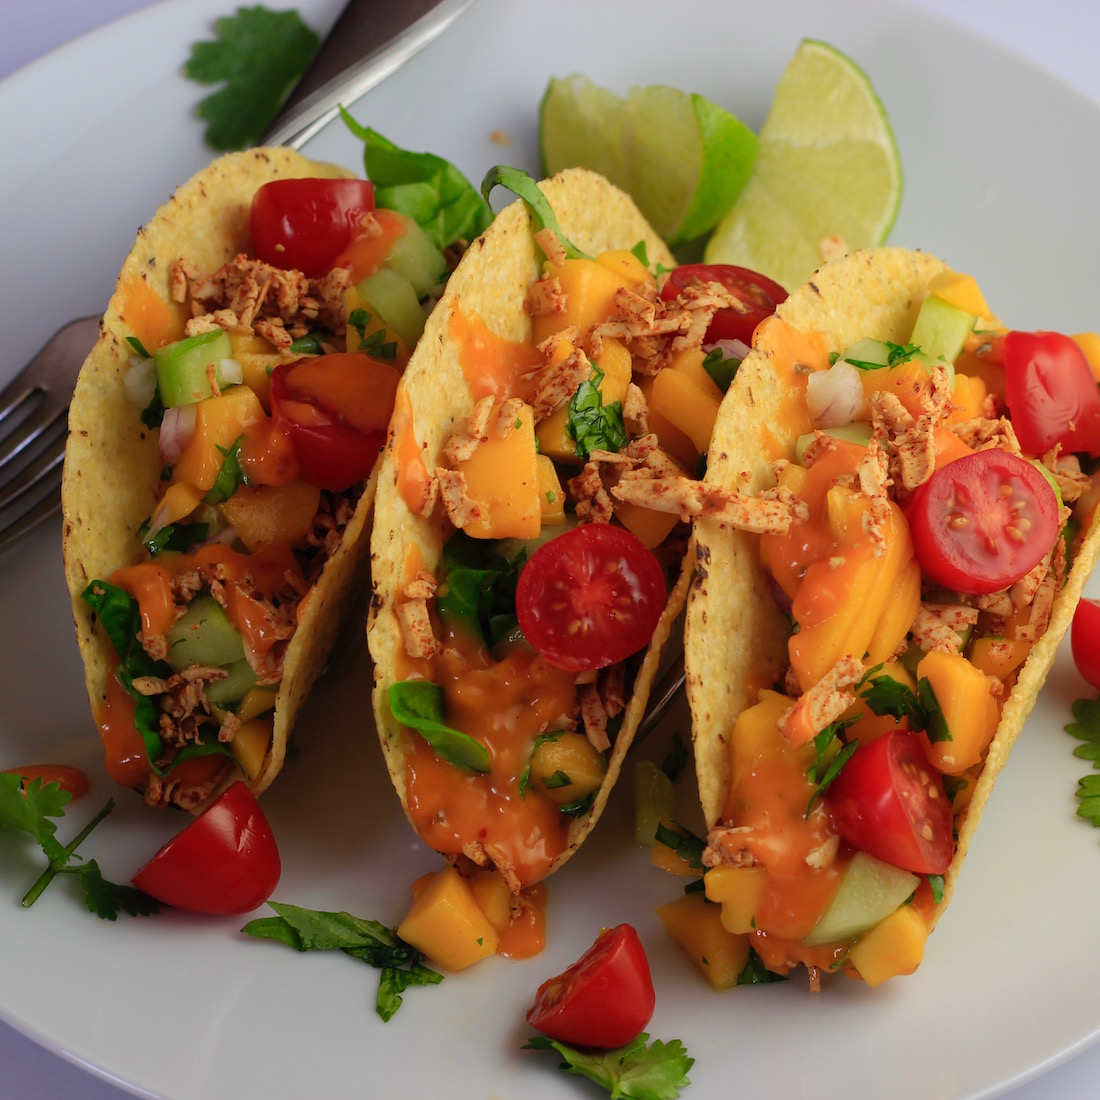 Tofu Tacos with Melted Chao Cayenne Cheese and Mango Salsa11